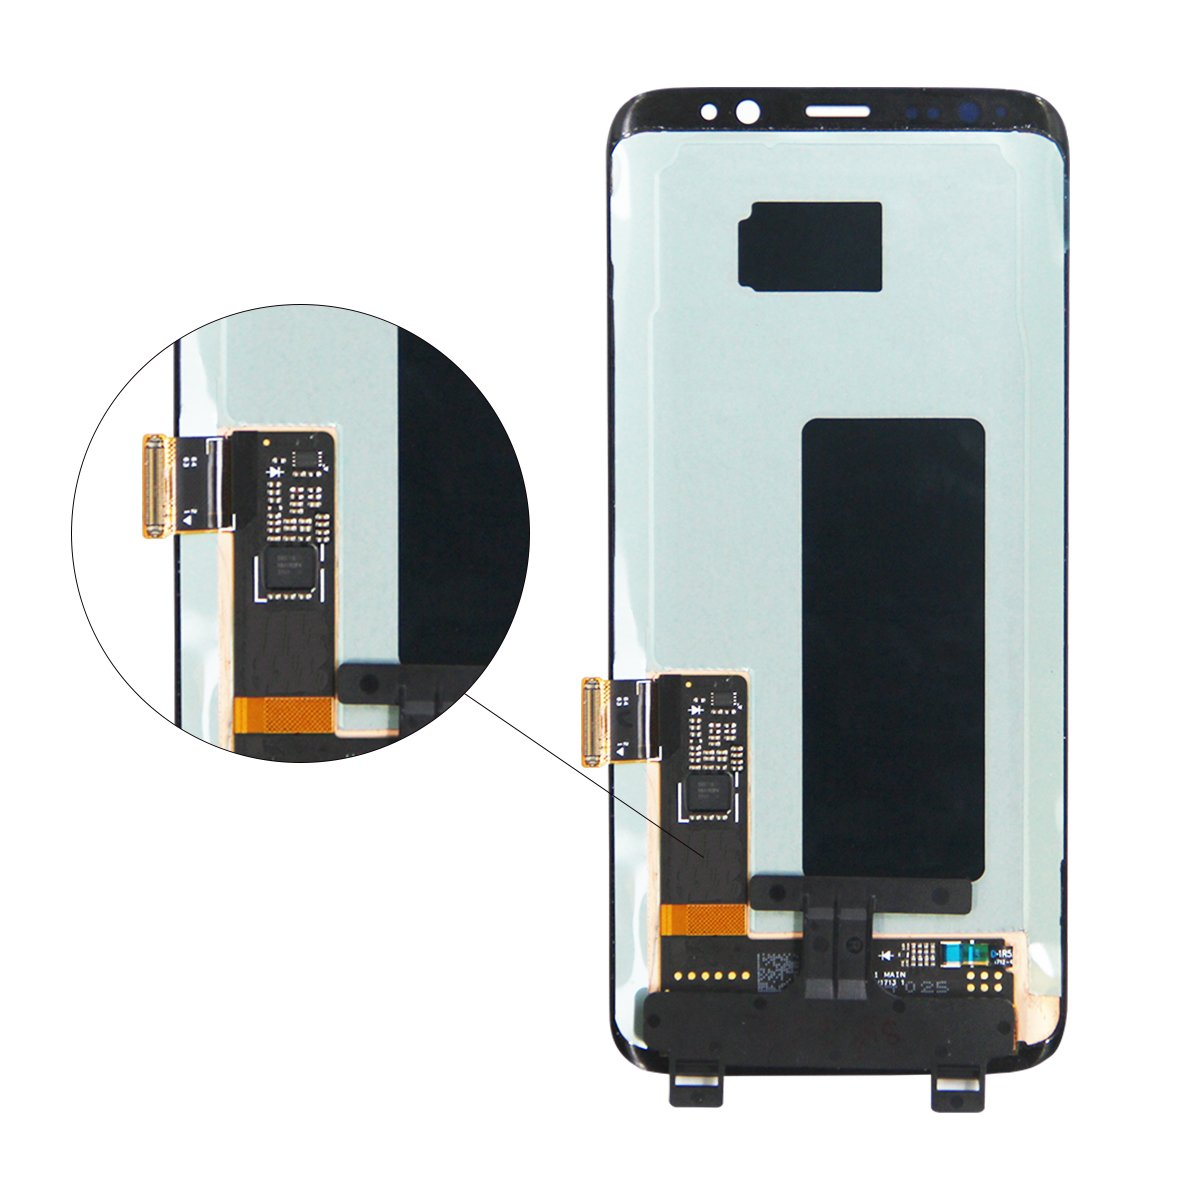 HJSDtech LCD Display Screen Touch Screen Digitizer Assembly Replacement for Samsung Galaxy S8 by HJSDtech (Image #3)